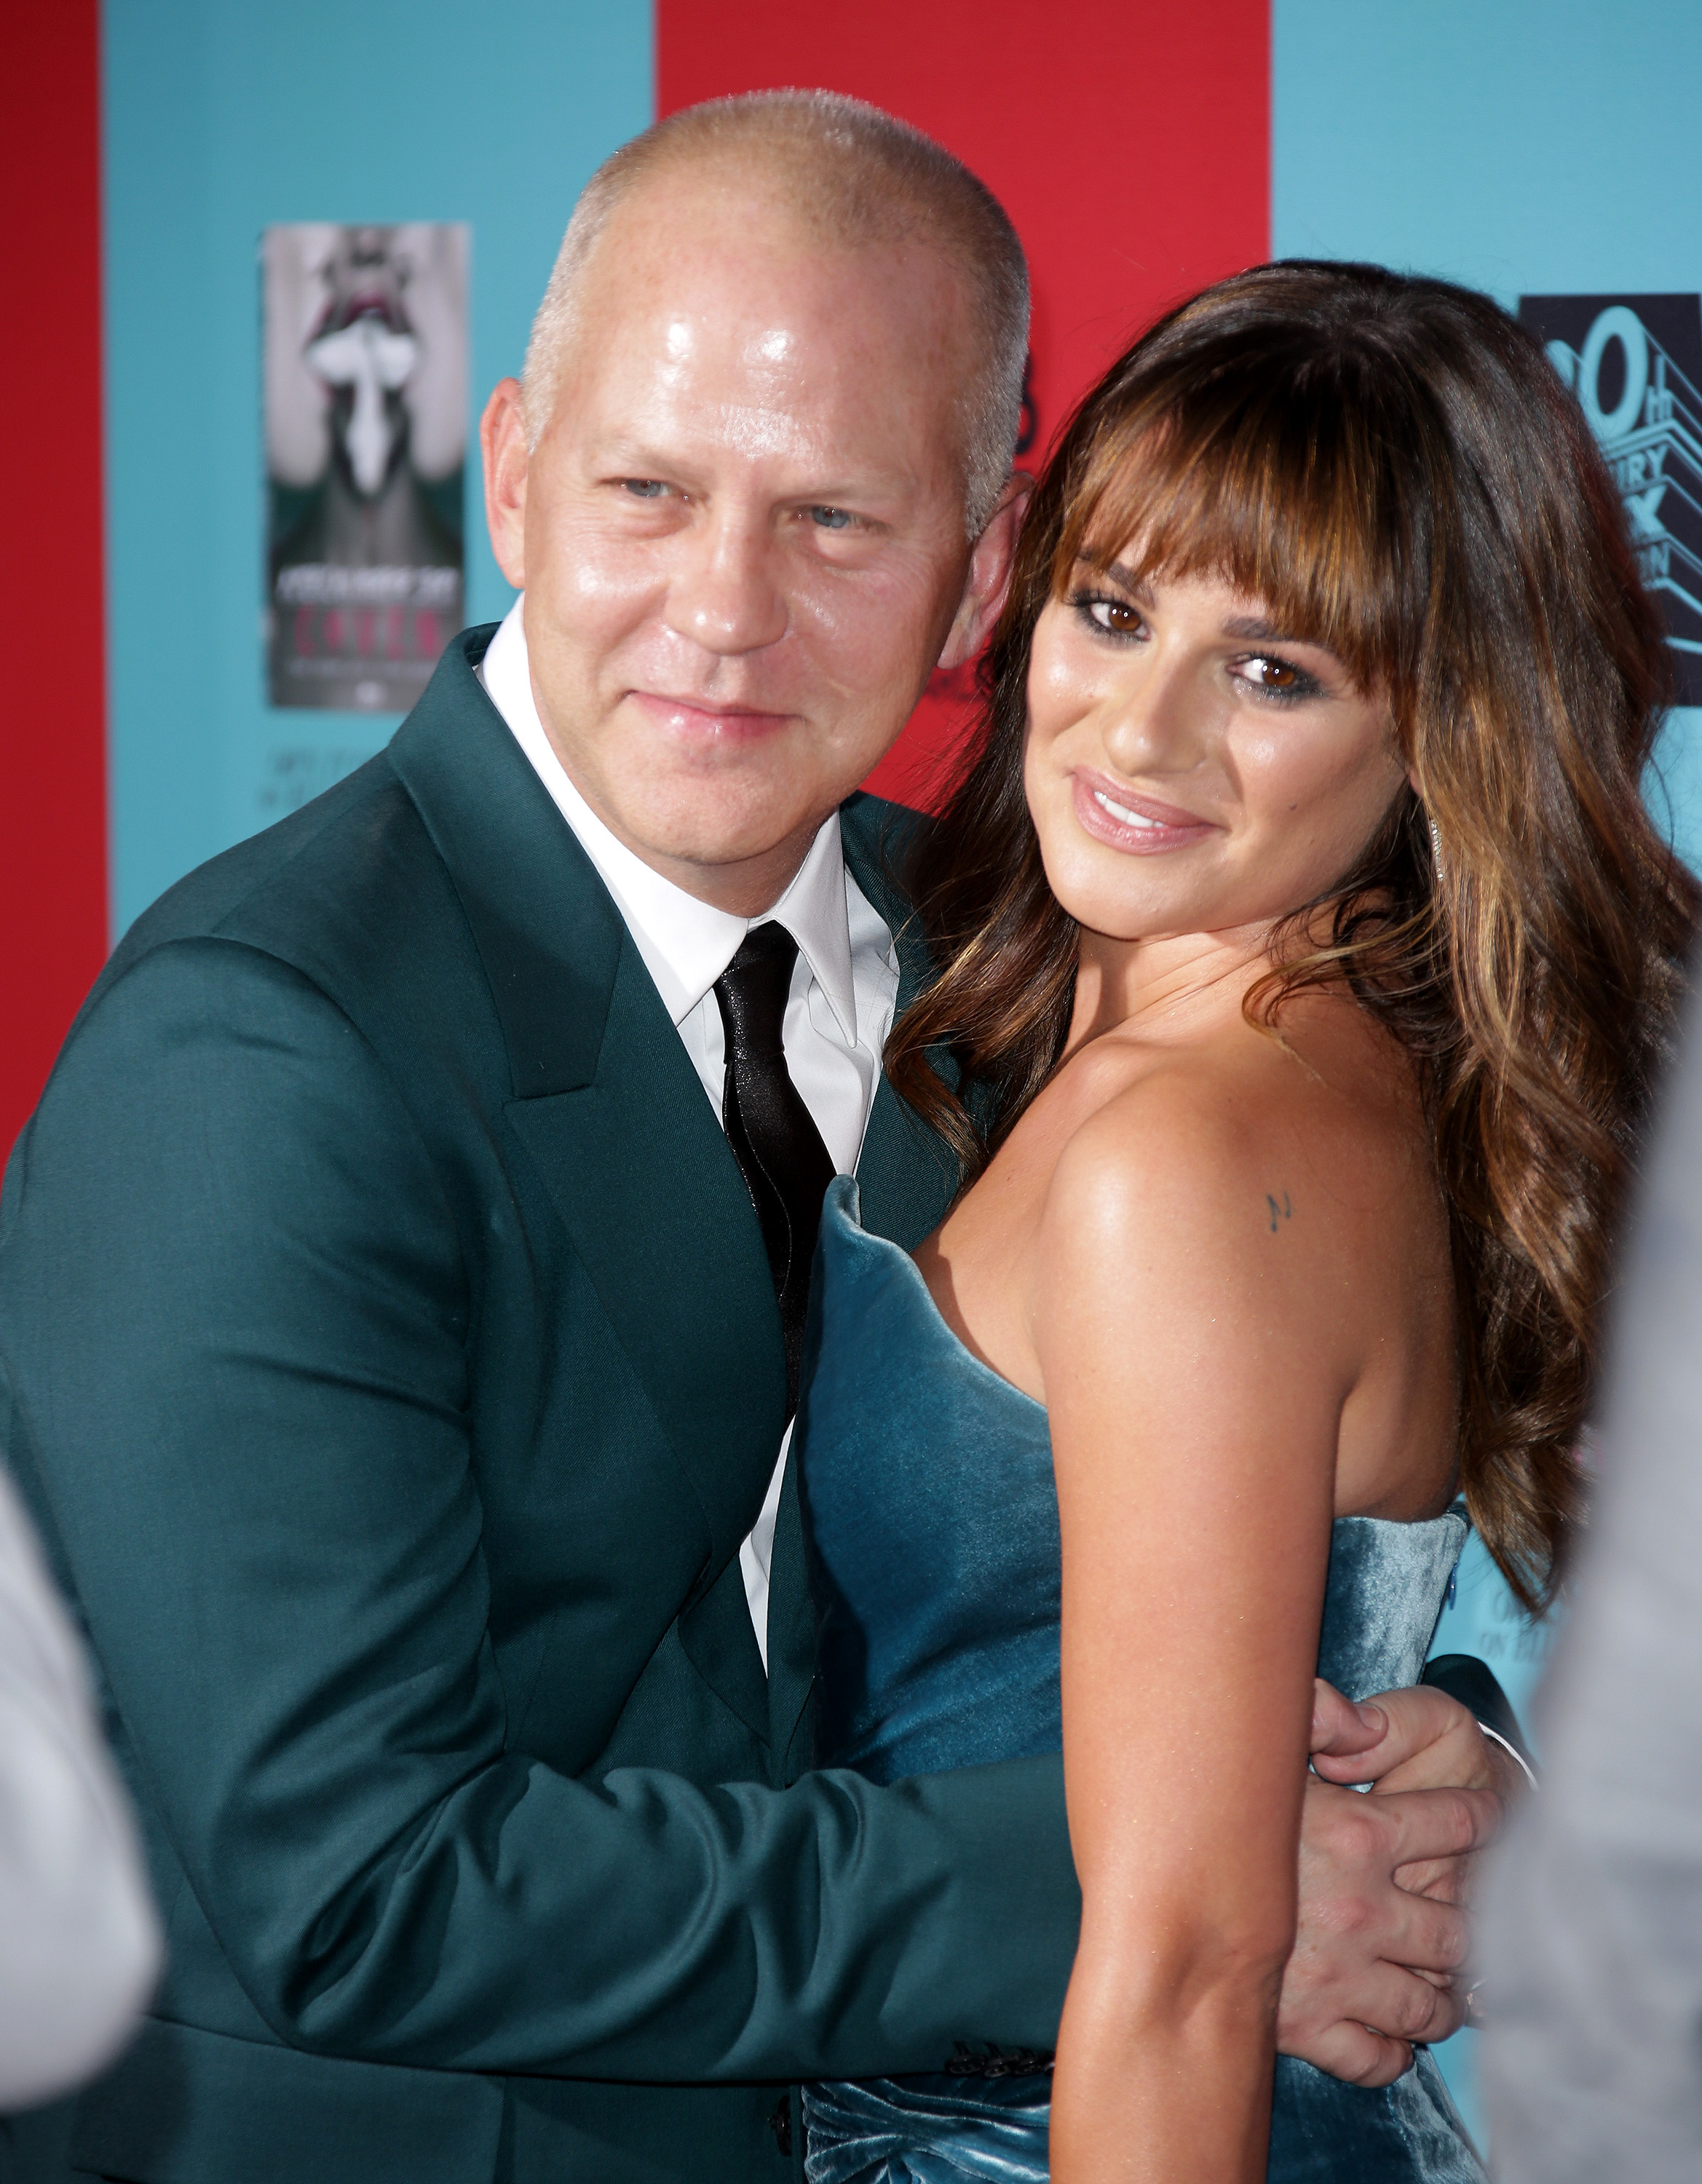 """Ryan Murphy and Lea Michele attend the premiere of """"American Horror Story: Freak Show"""" in Los Angeles on Oct. 5, 2014."""